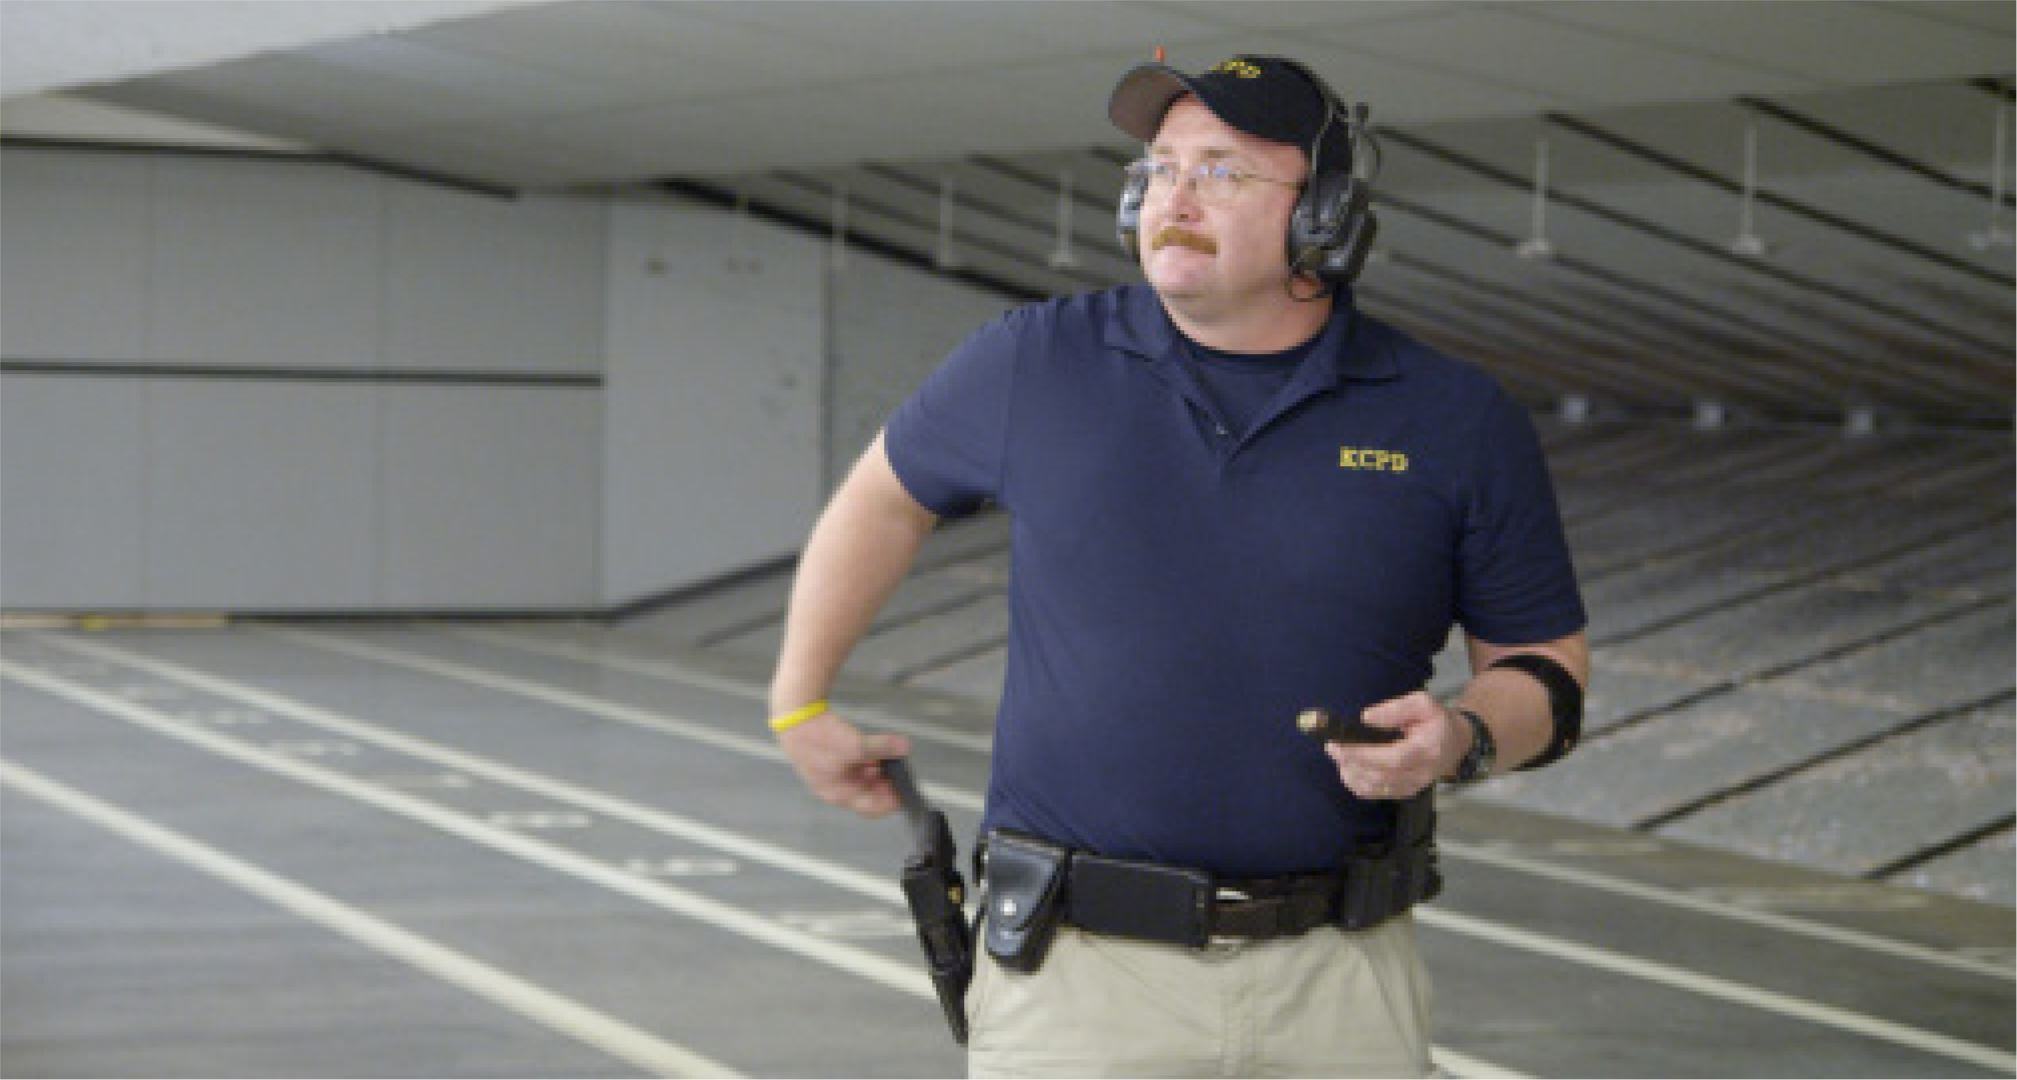 KCPD Firearms Training Supervisor Ward Smith